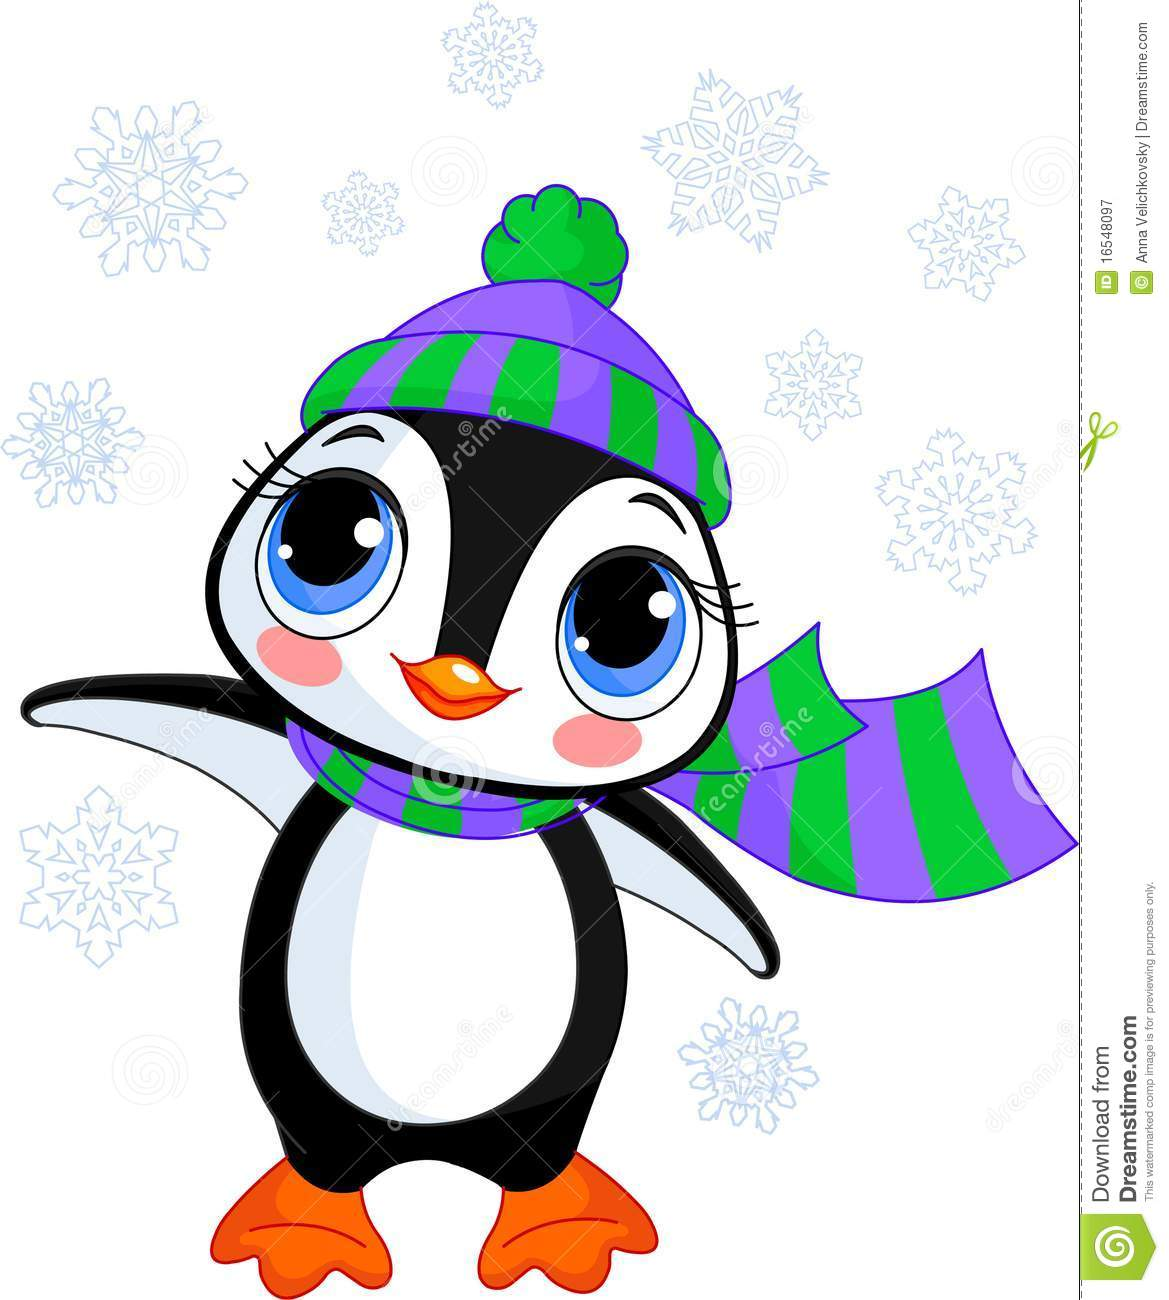 c73be31bc19784 Cute Winter Penguin With Hat And Scarf Stock Vector - Illustration ...